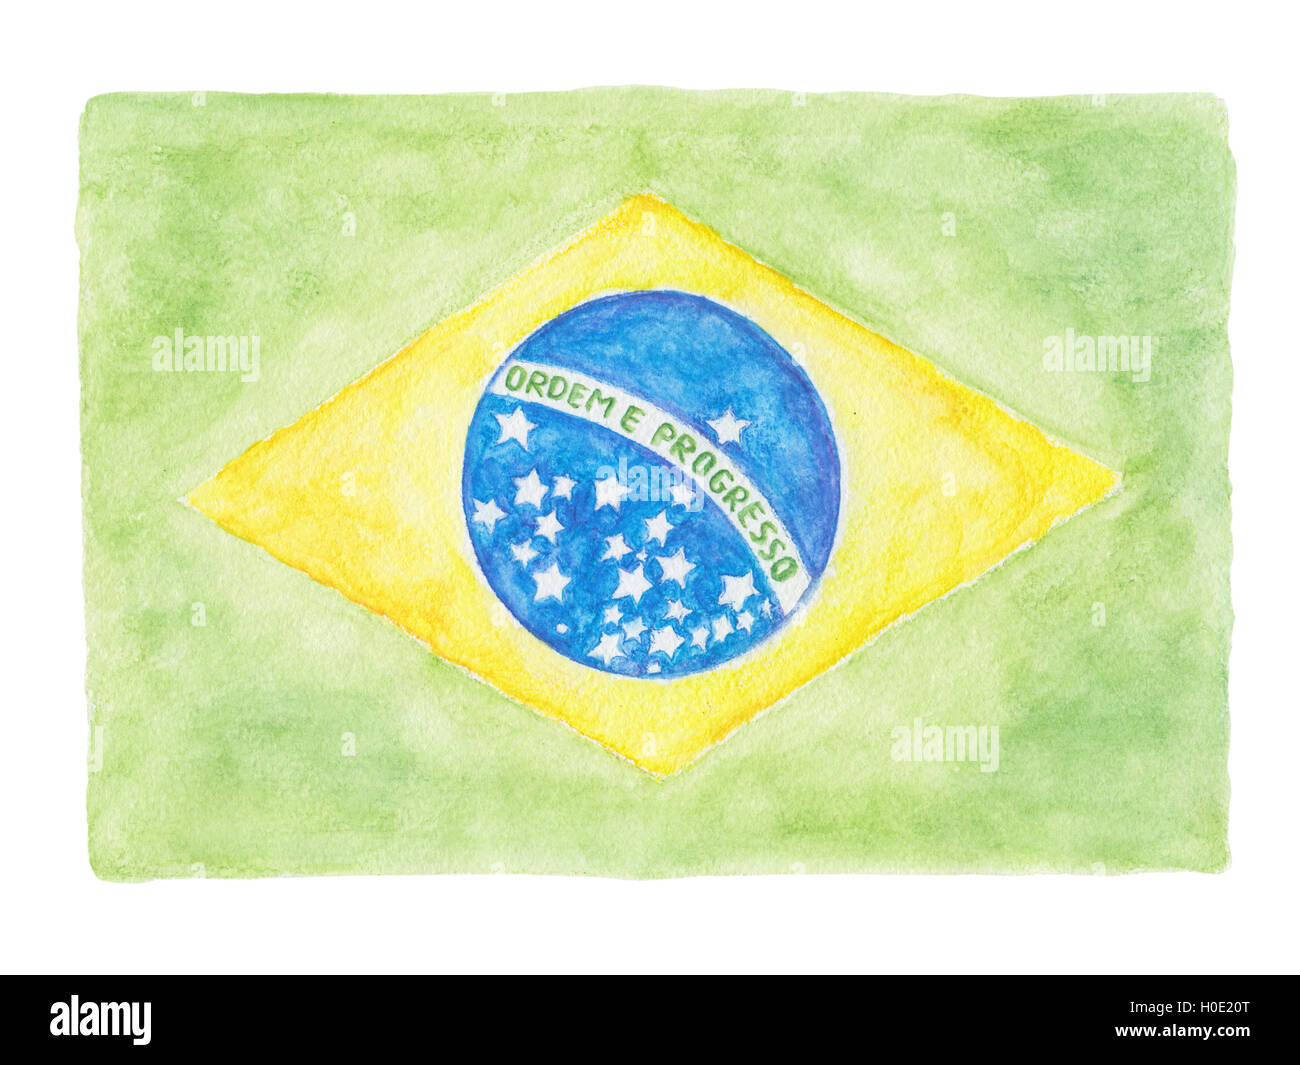 Brazil flag with the national motto 'Ordem e Progresso' (portuguese 'Order and Progress') - Stock Image